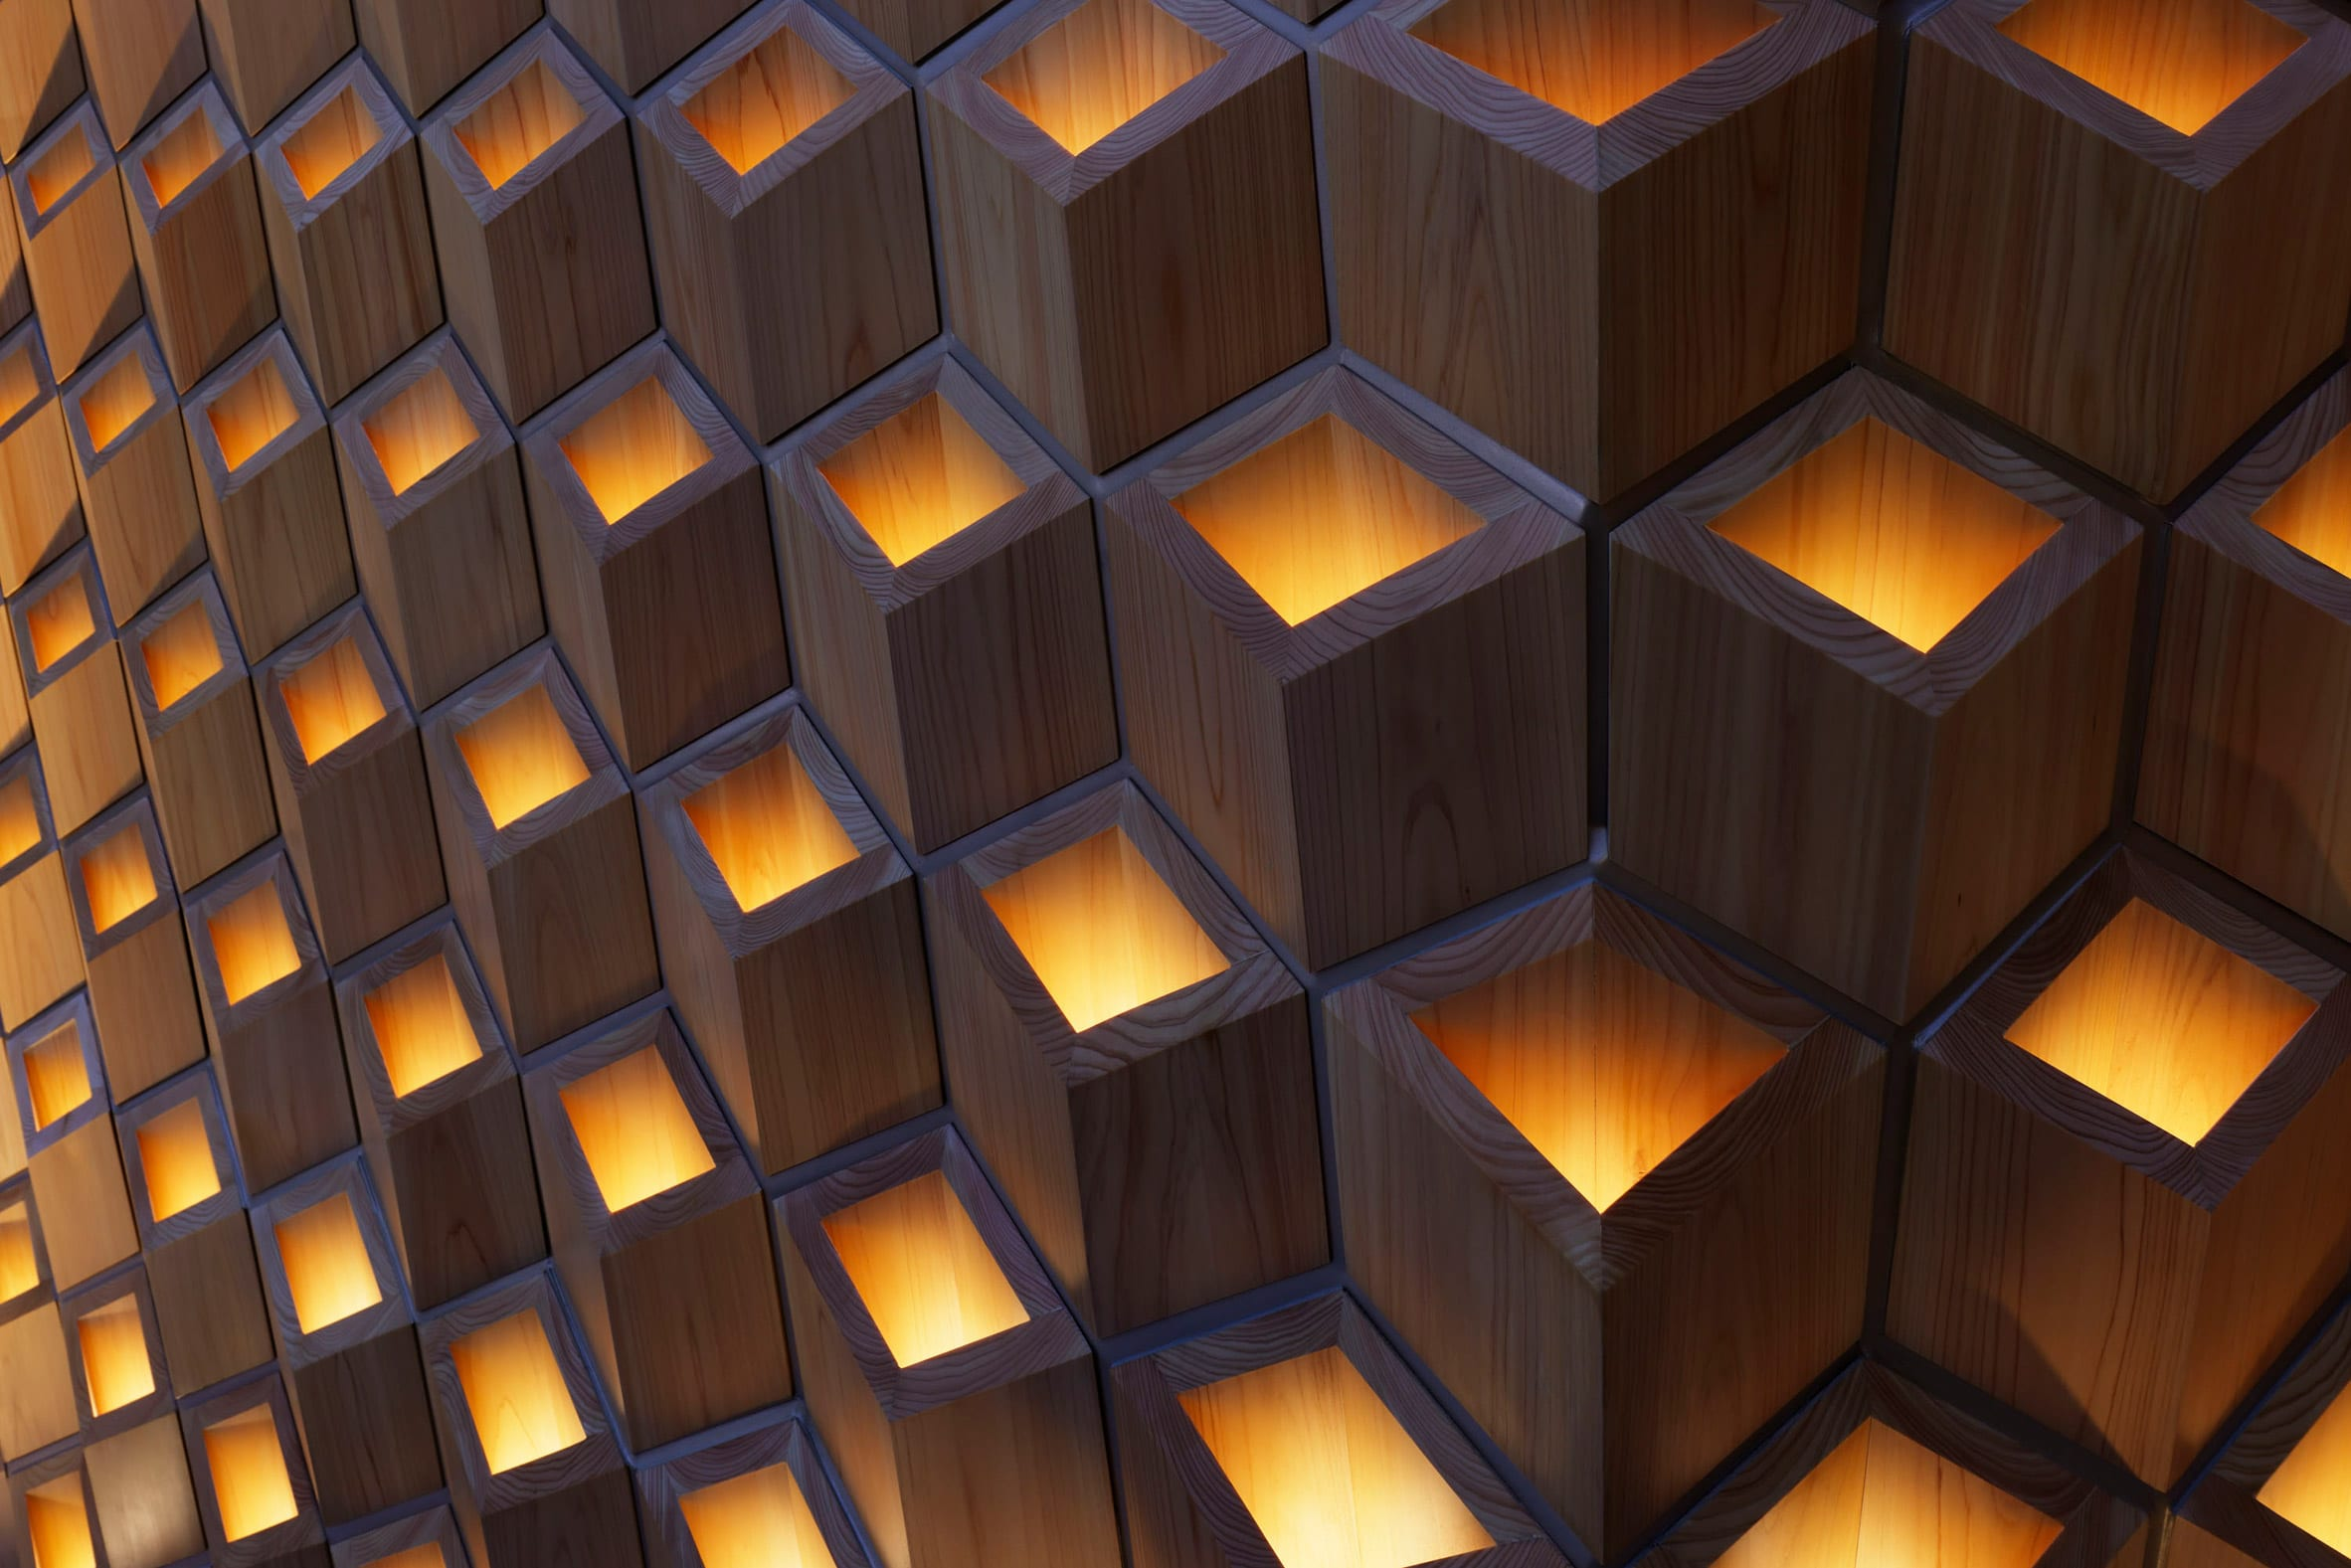 The facade by Klein Dytham Architecture glows from within